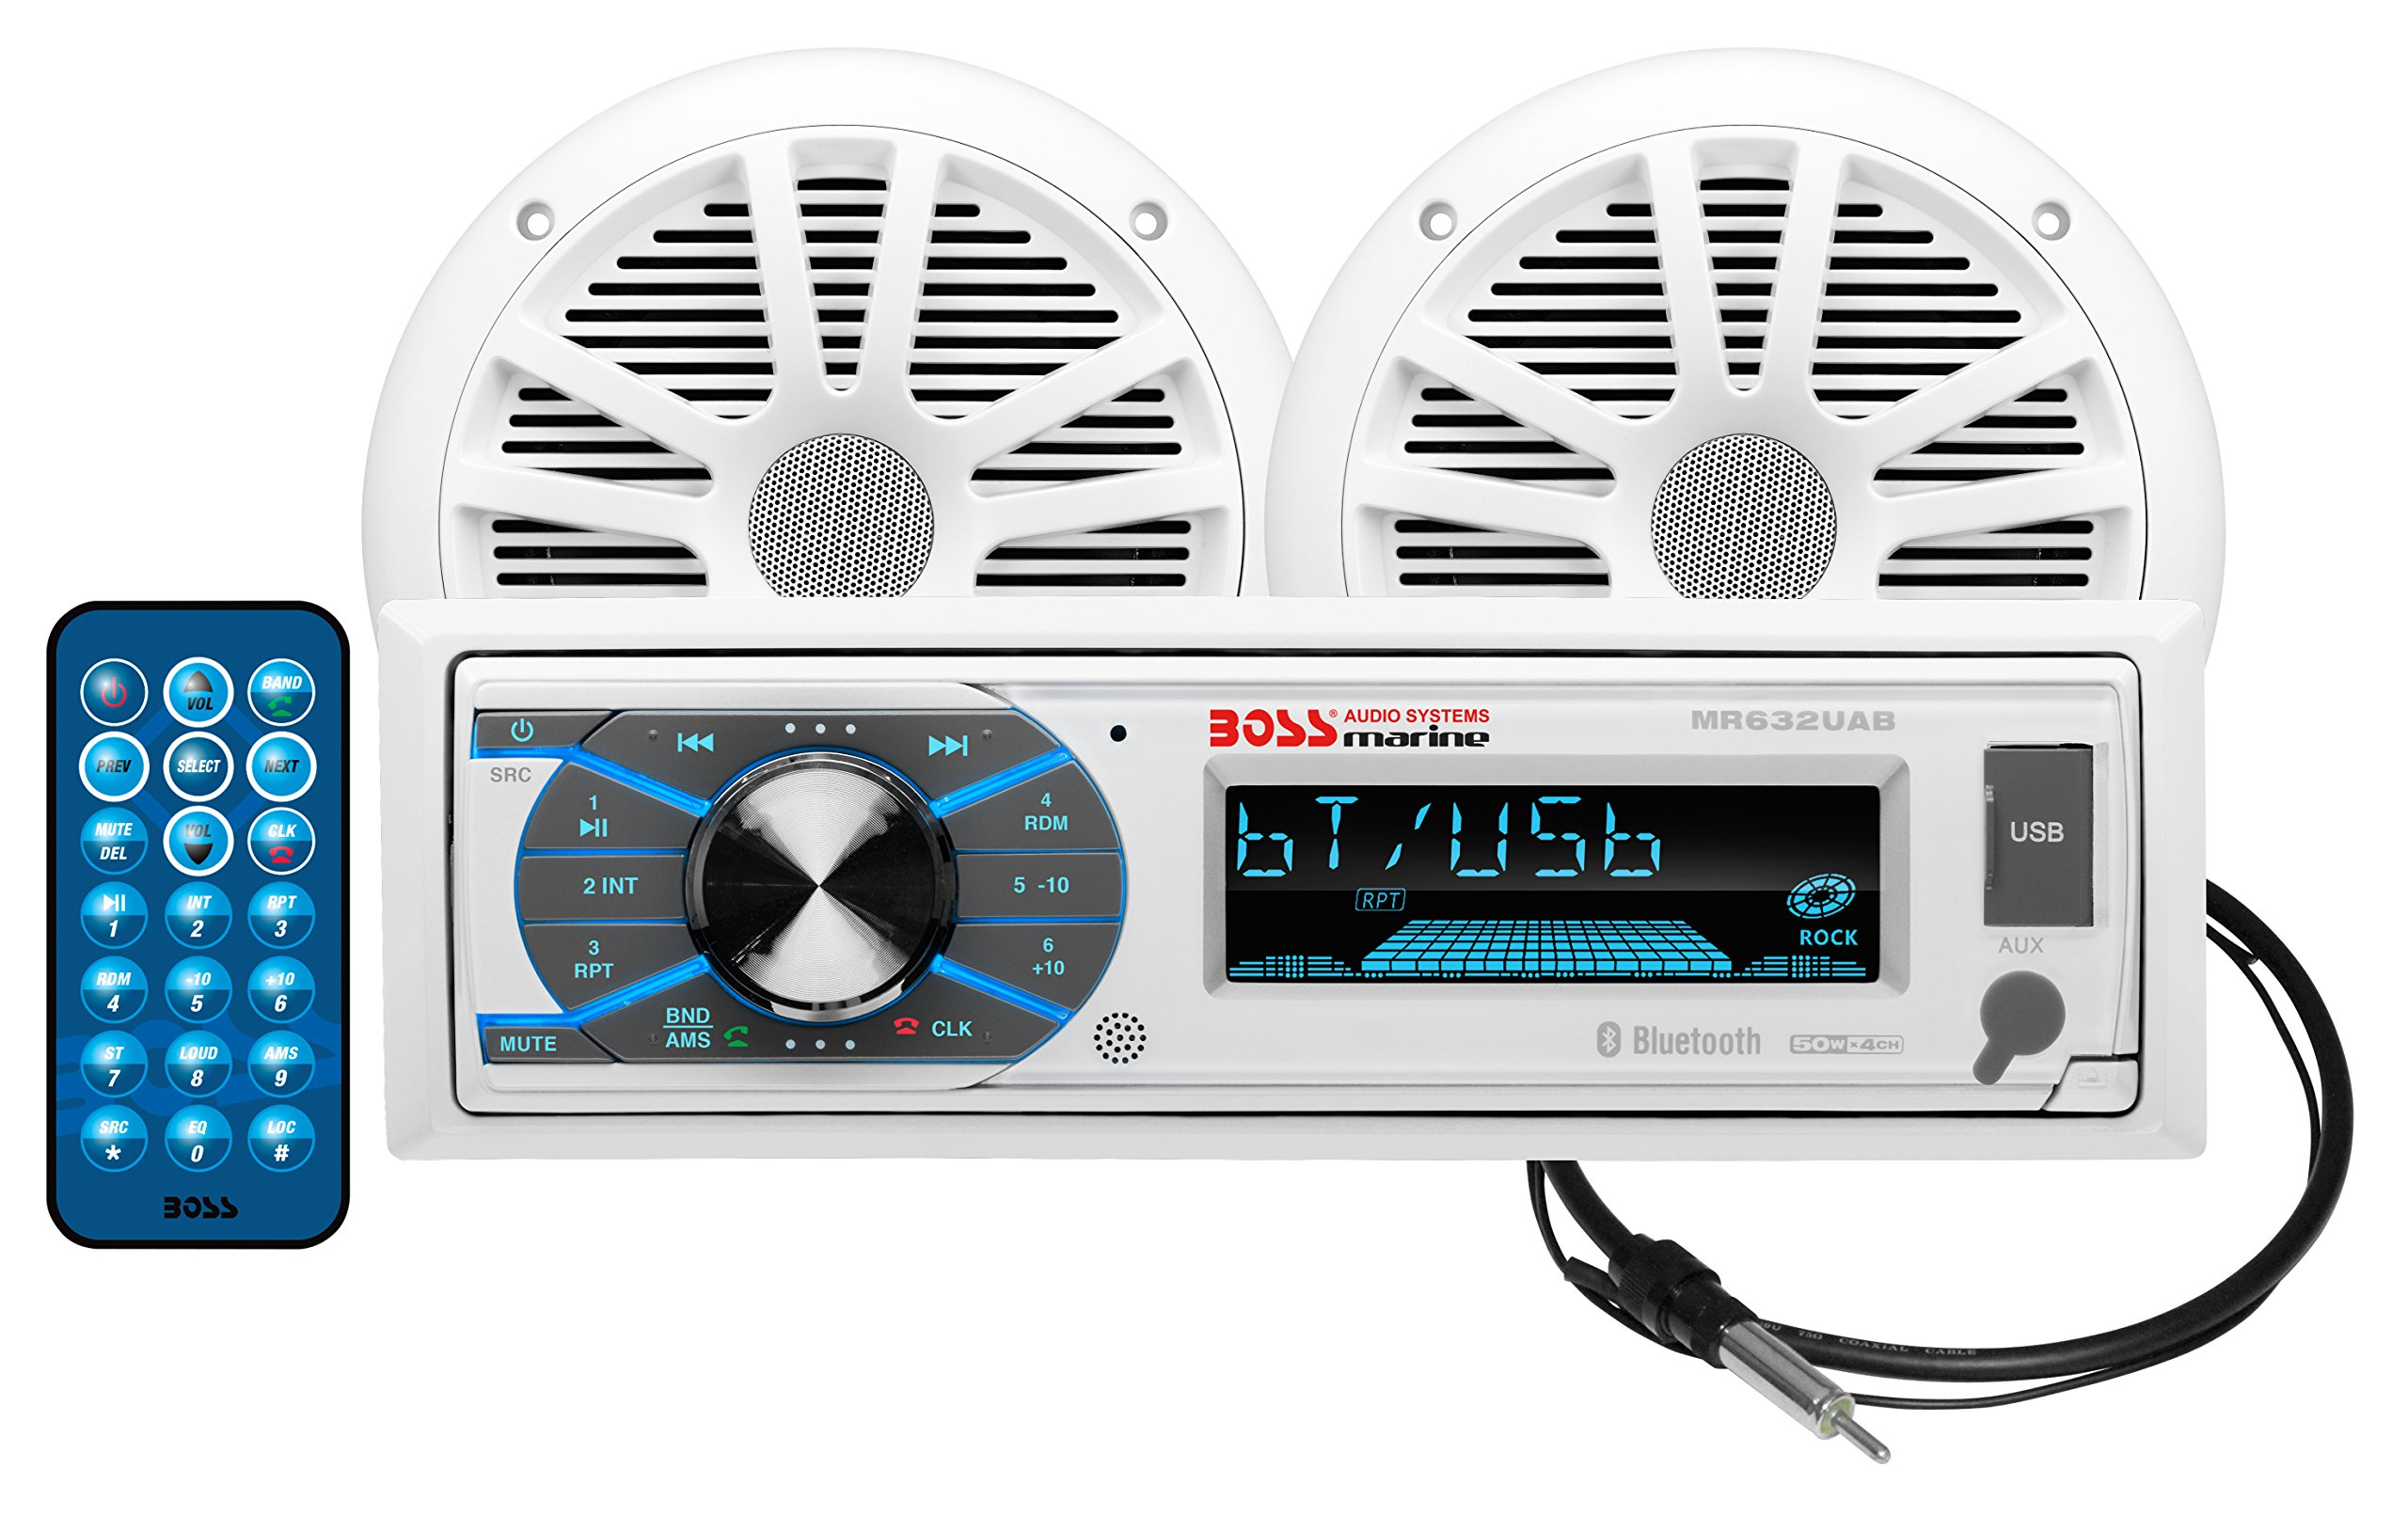 BOSS Audio MCK632WB.6 Marine Receiver & Speaker Package - Weatherproof Receiver with Bluetooth Audio/USB/MP3/AM/FM/Aux-in (No CD Player), Two 6.5'' Weatherproof Speakers, One Marine Dipole Antenna